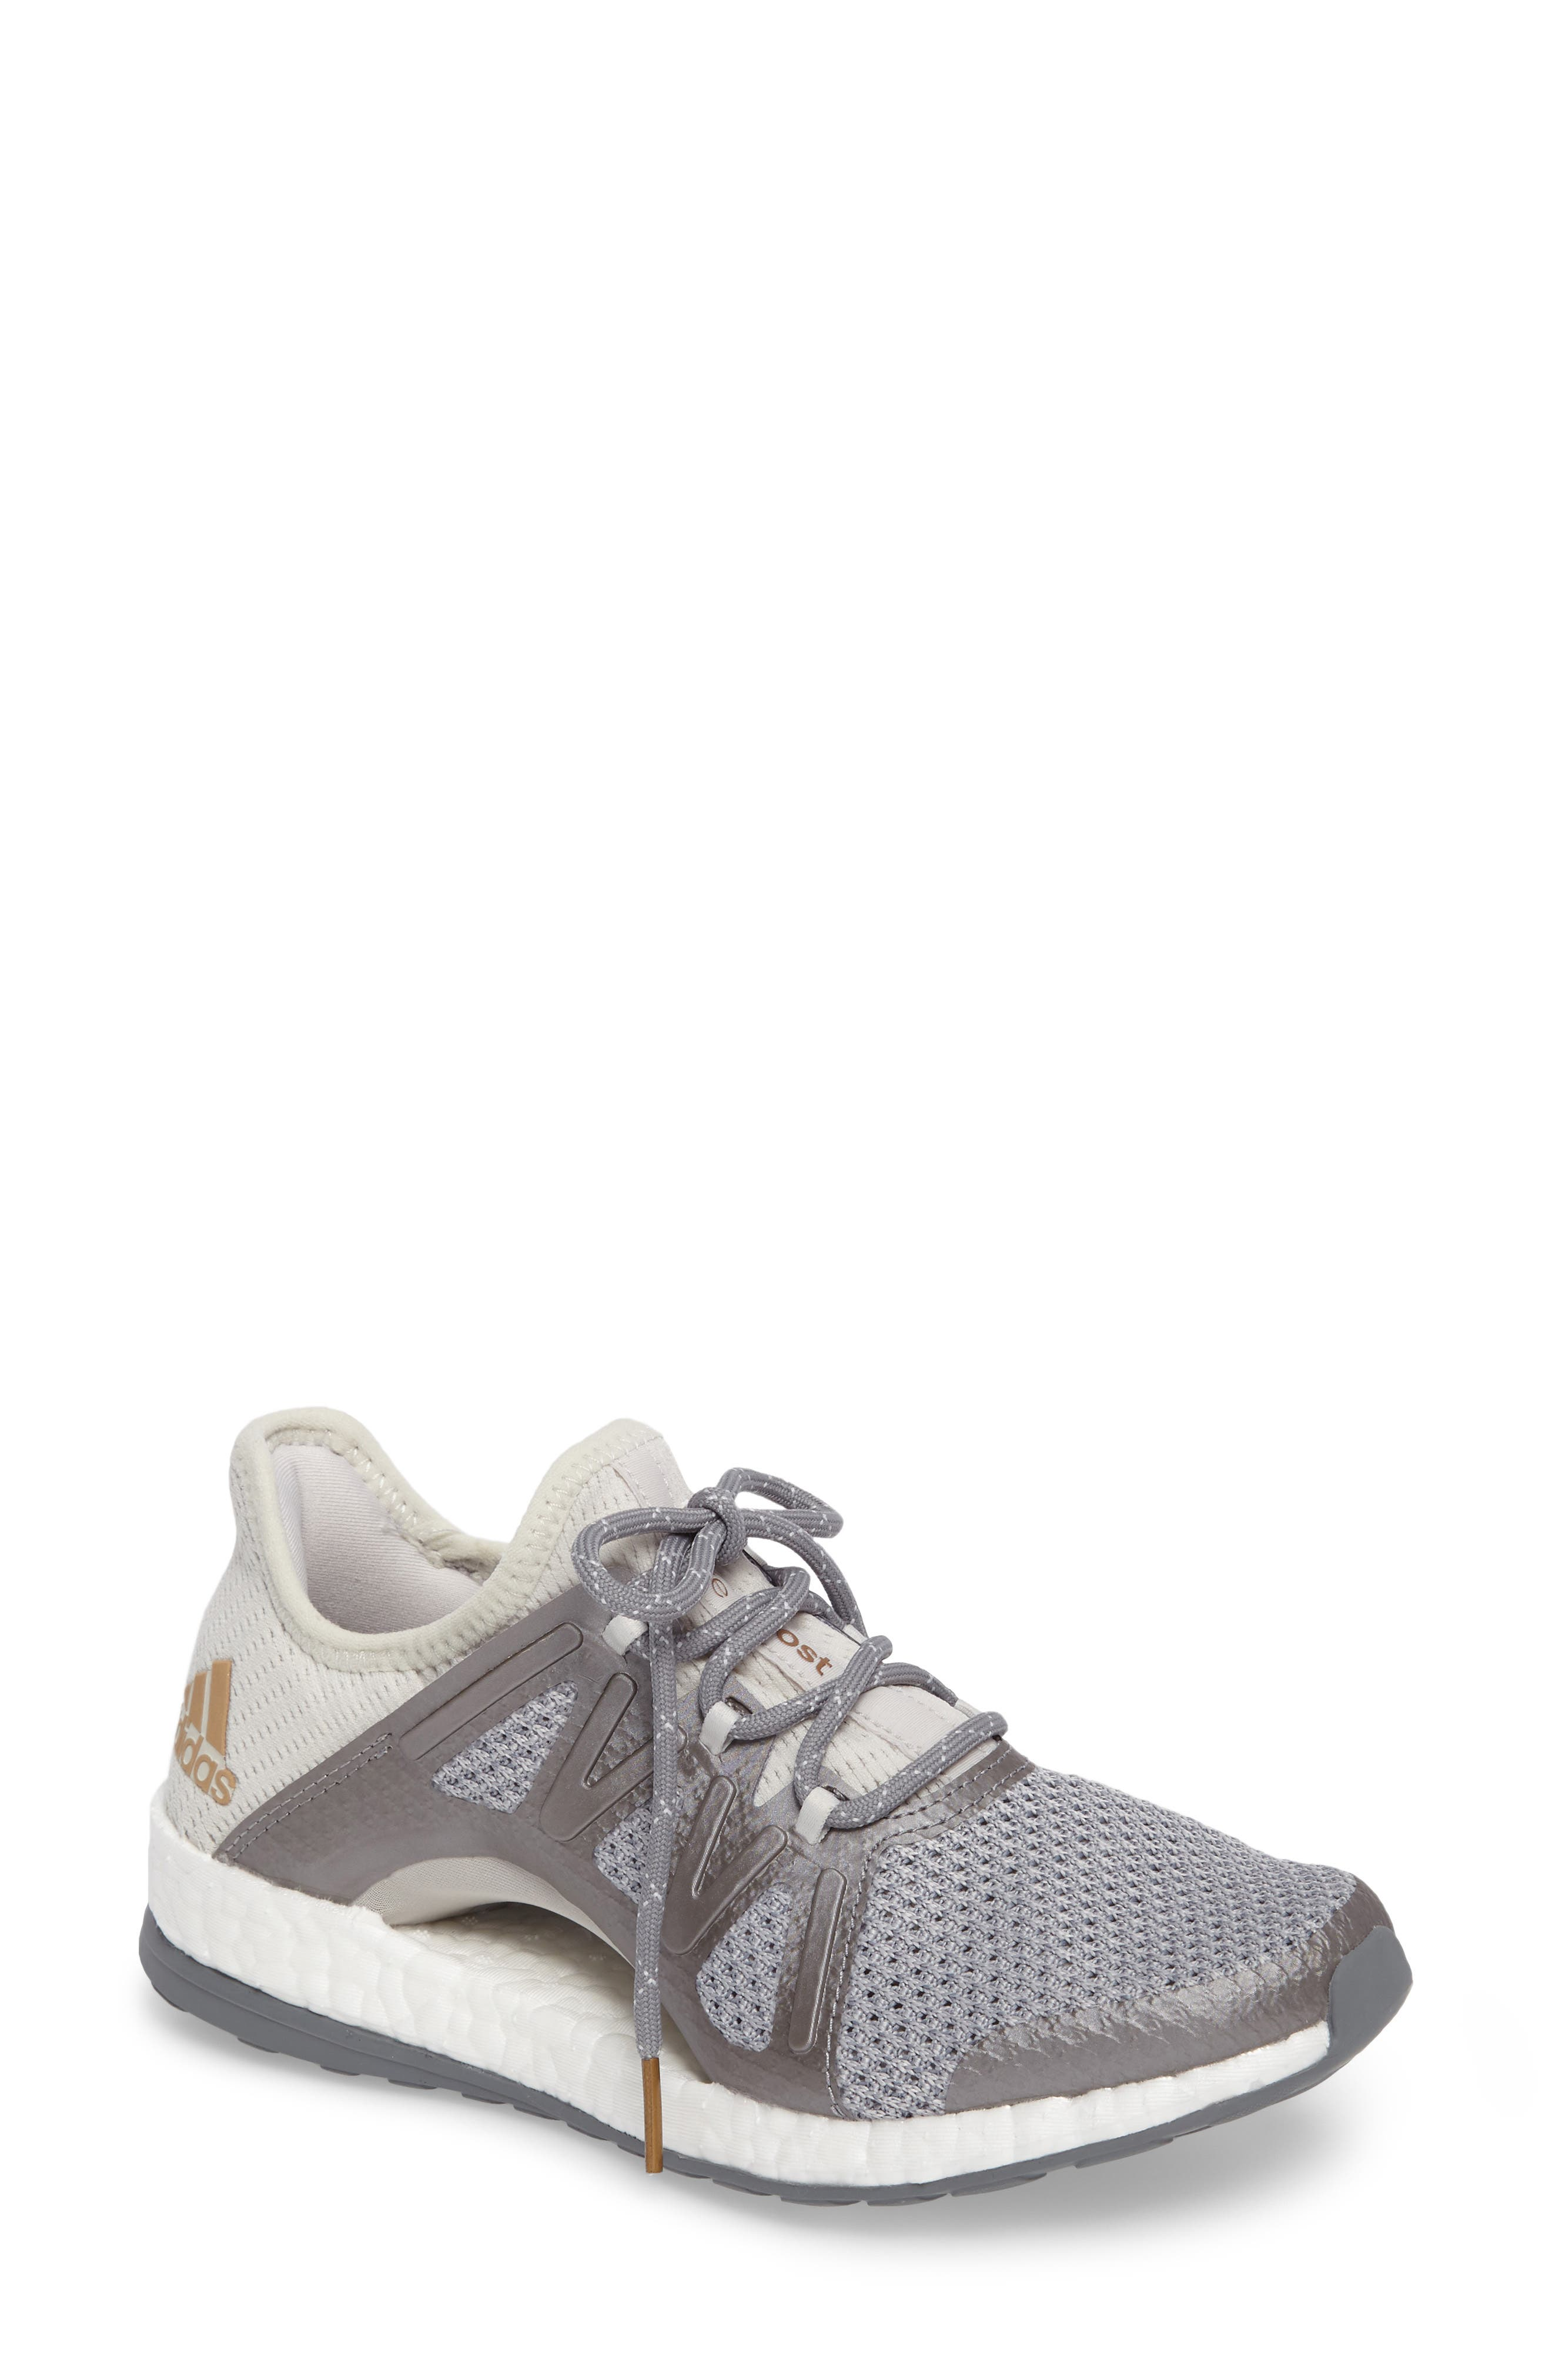 PureBOOST Xpose Running Shoe,                             Main thumbnail 3, color,